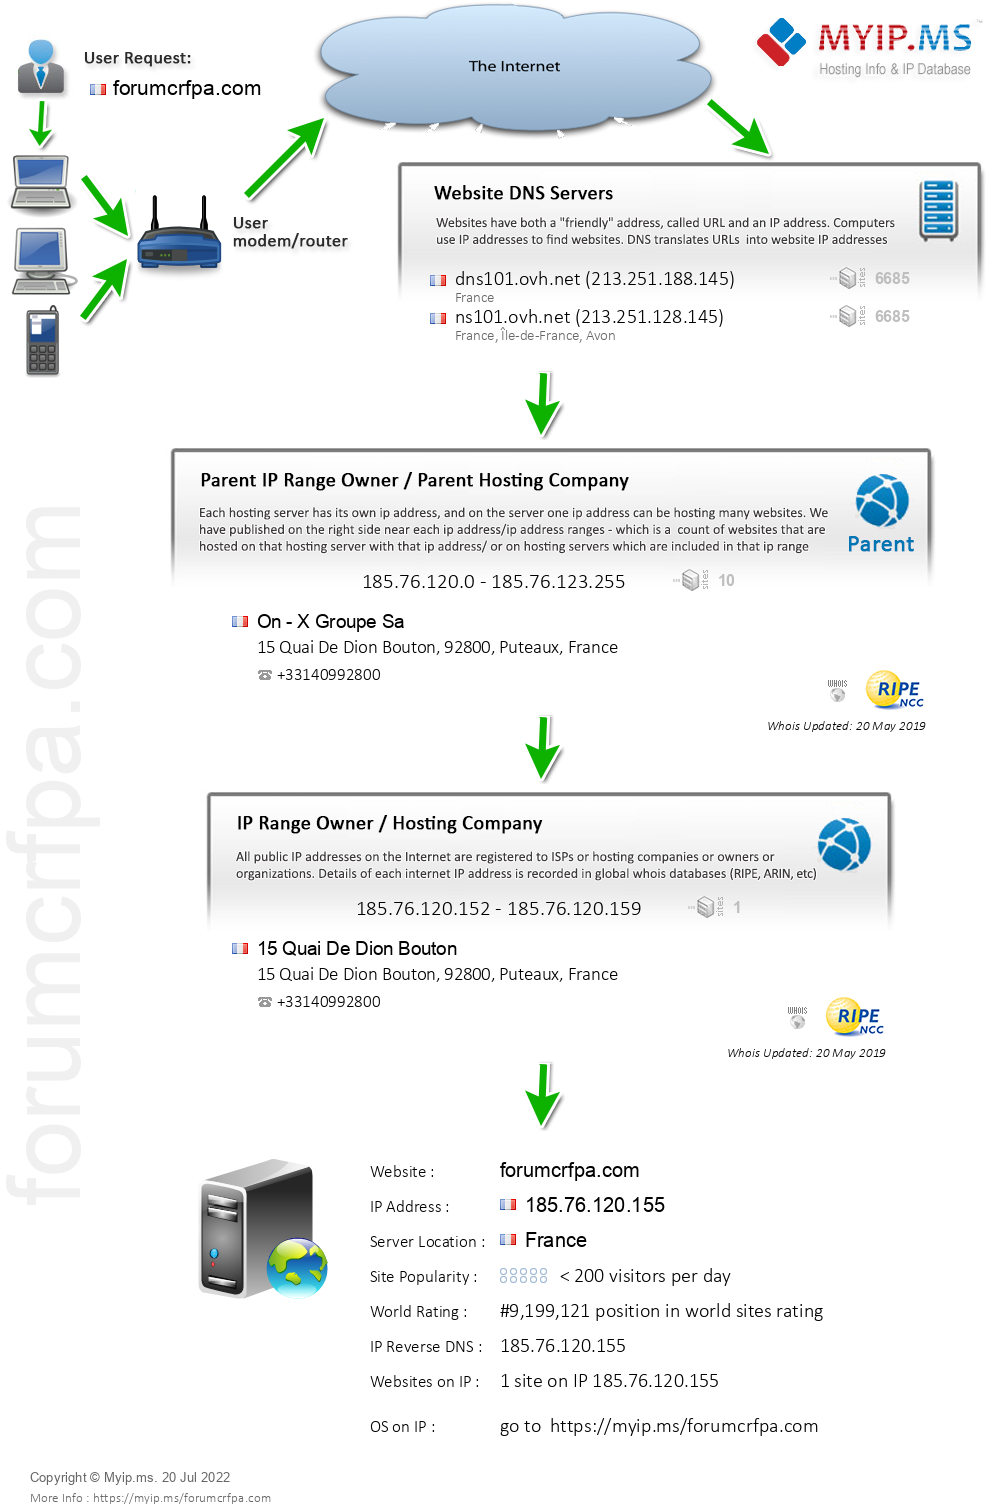 Forumcrfpa.com - Website Hosting Visual IP Diagram